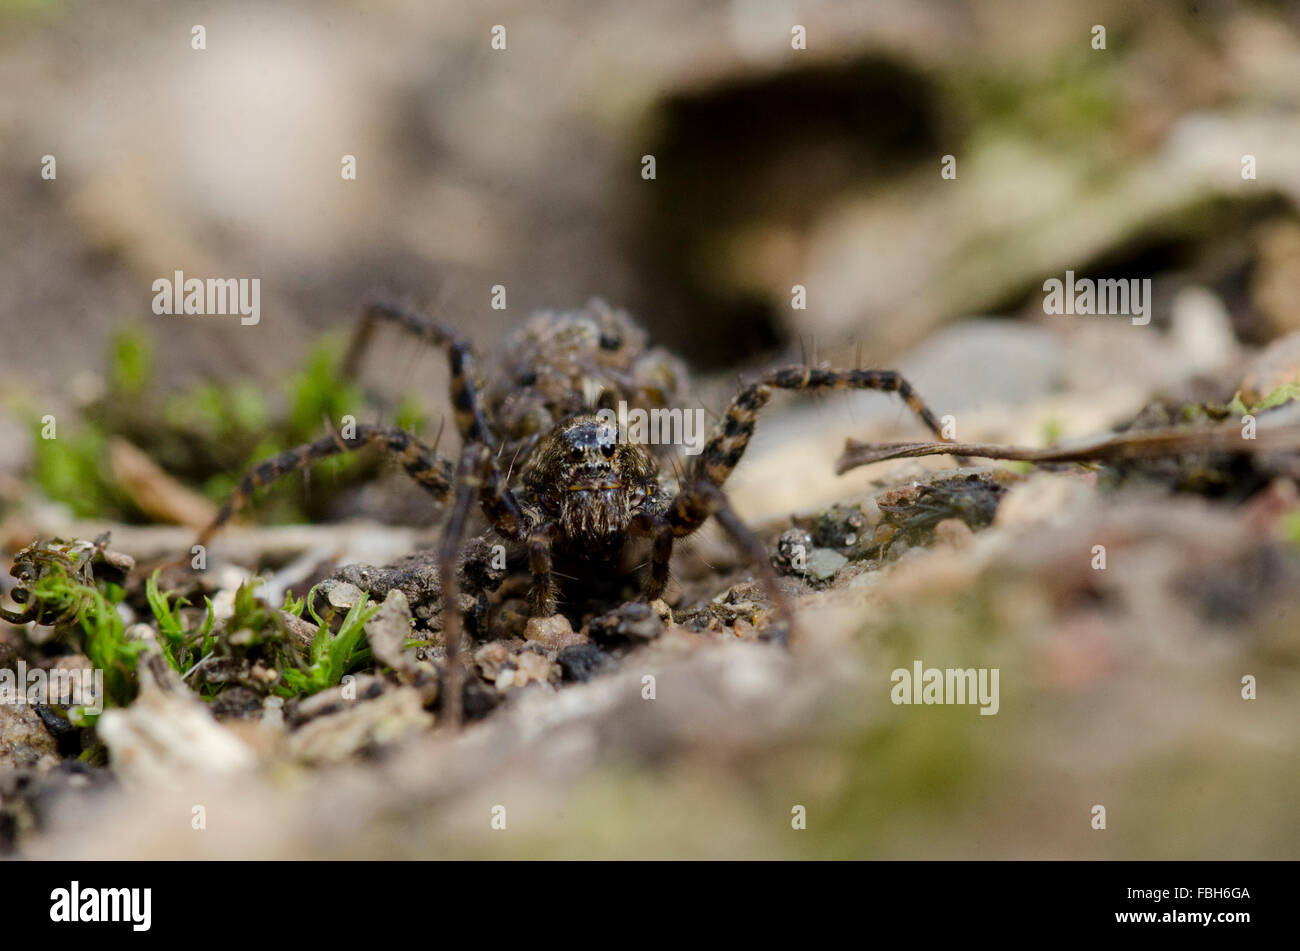 Wolf Spider with her young on her back - Stock Image